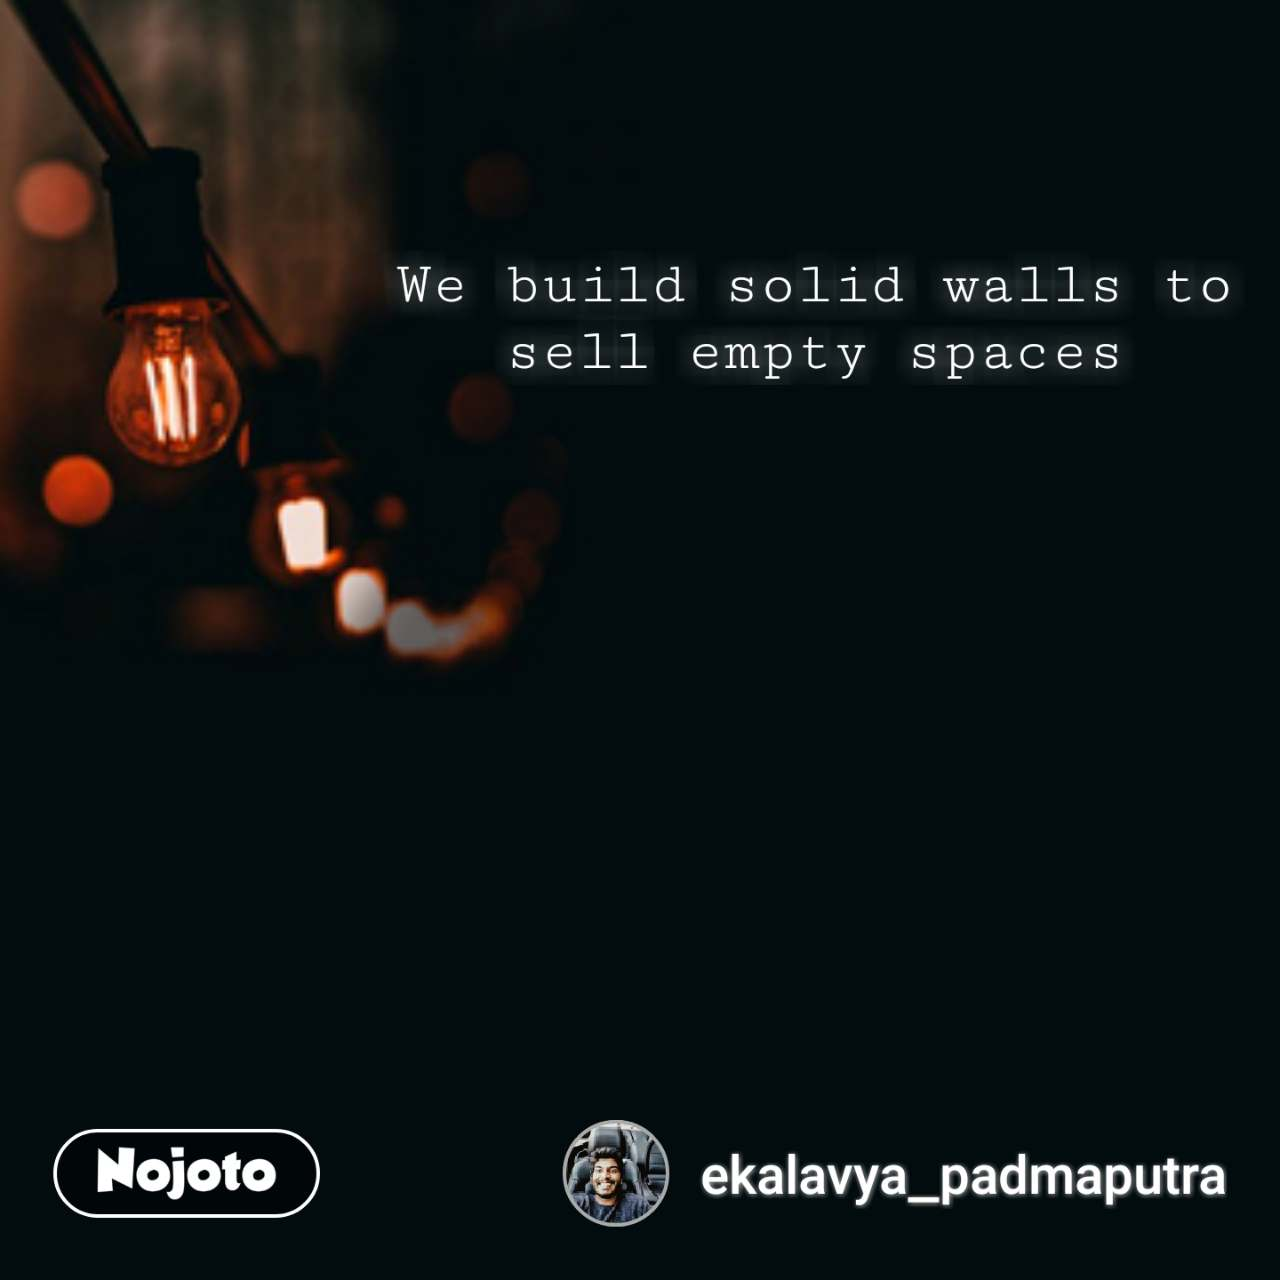 """We build solid walls to sell empty spaces""- Ekalavya [2280×1280]"